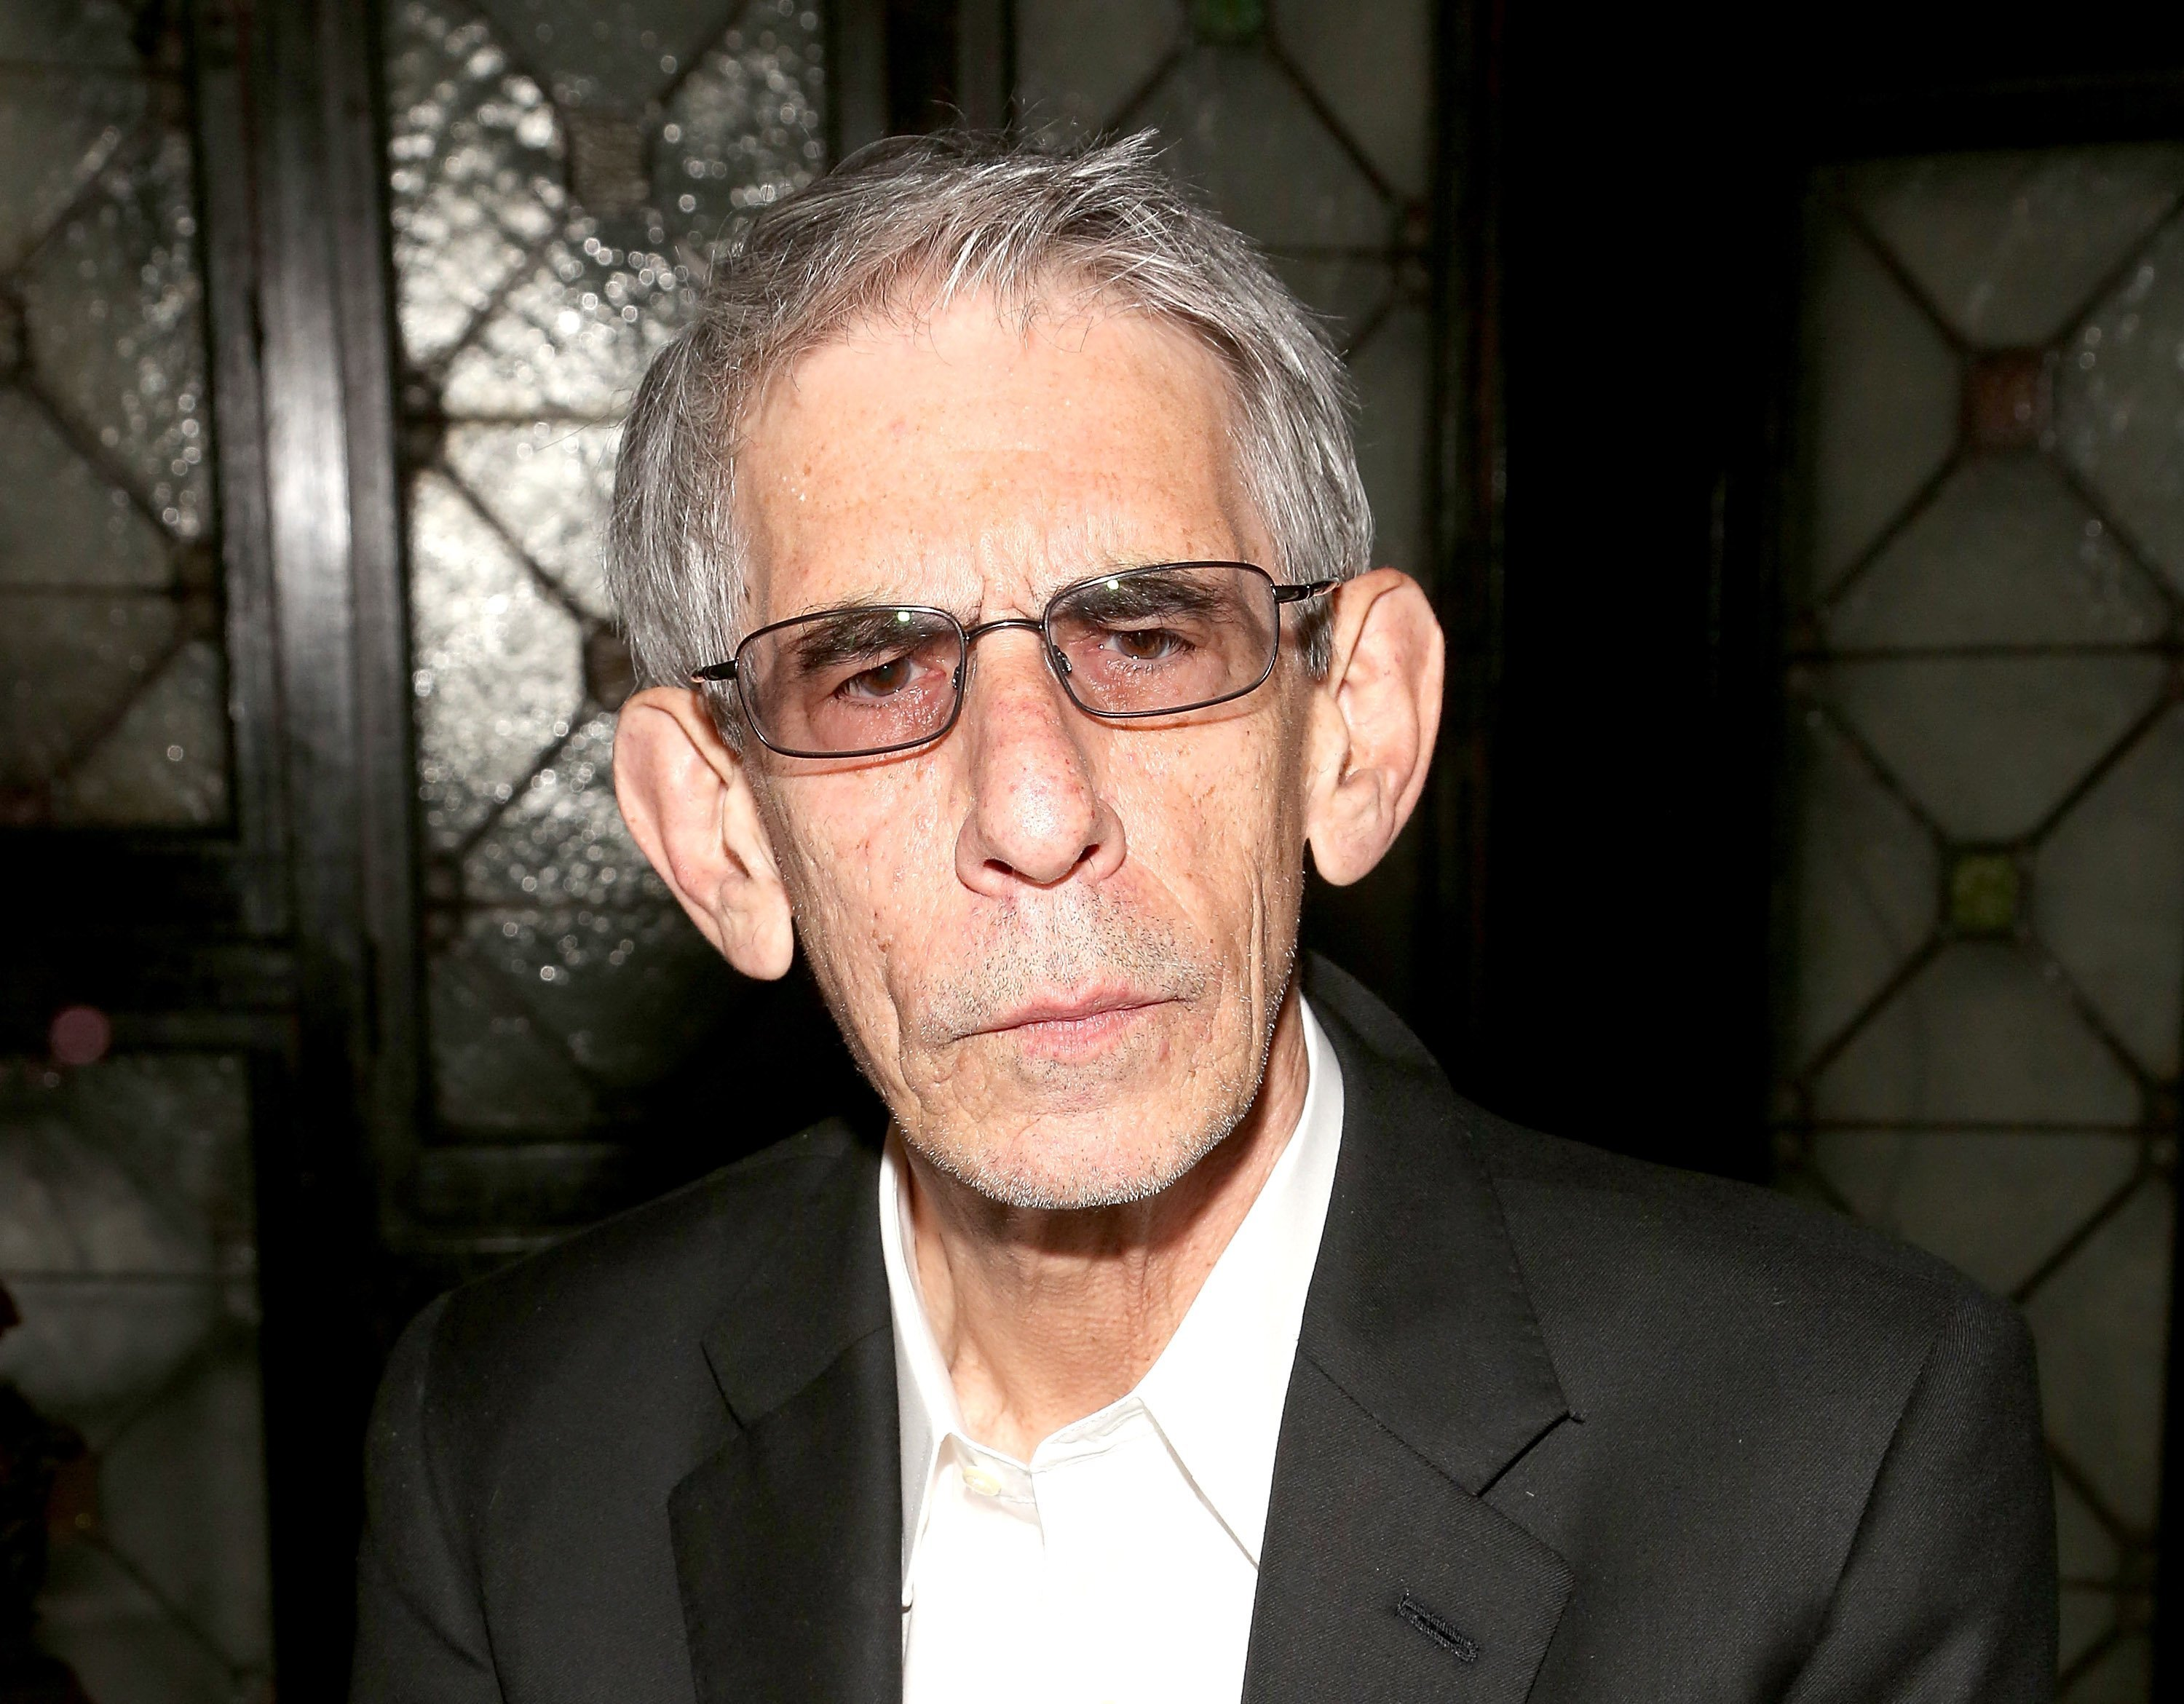 """Richard Belzer attends the Friars Club celebration of Jerry Lewis and the 50th anniversary """"The Nutty Professor"""" at New York Friars Club on June 5, 2014, in New York City. 